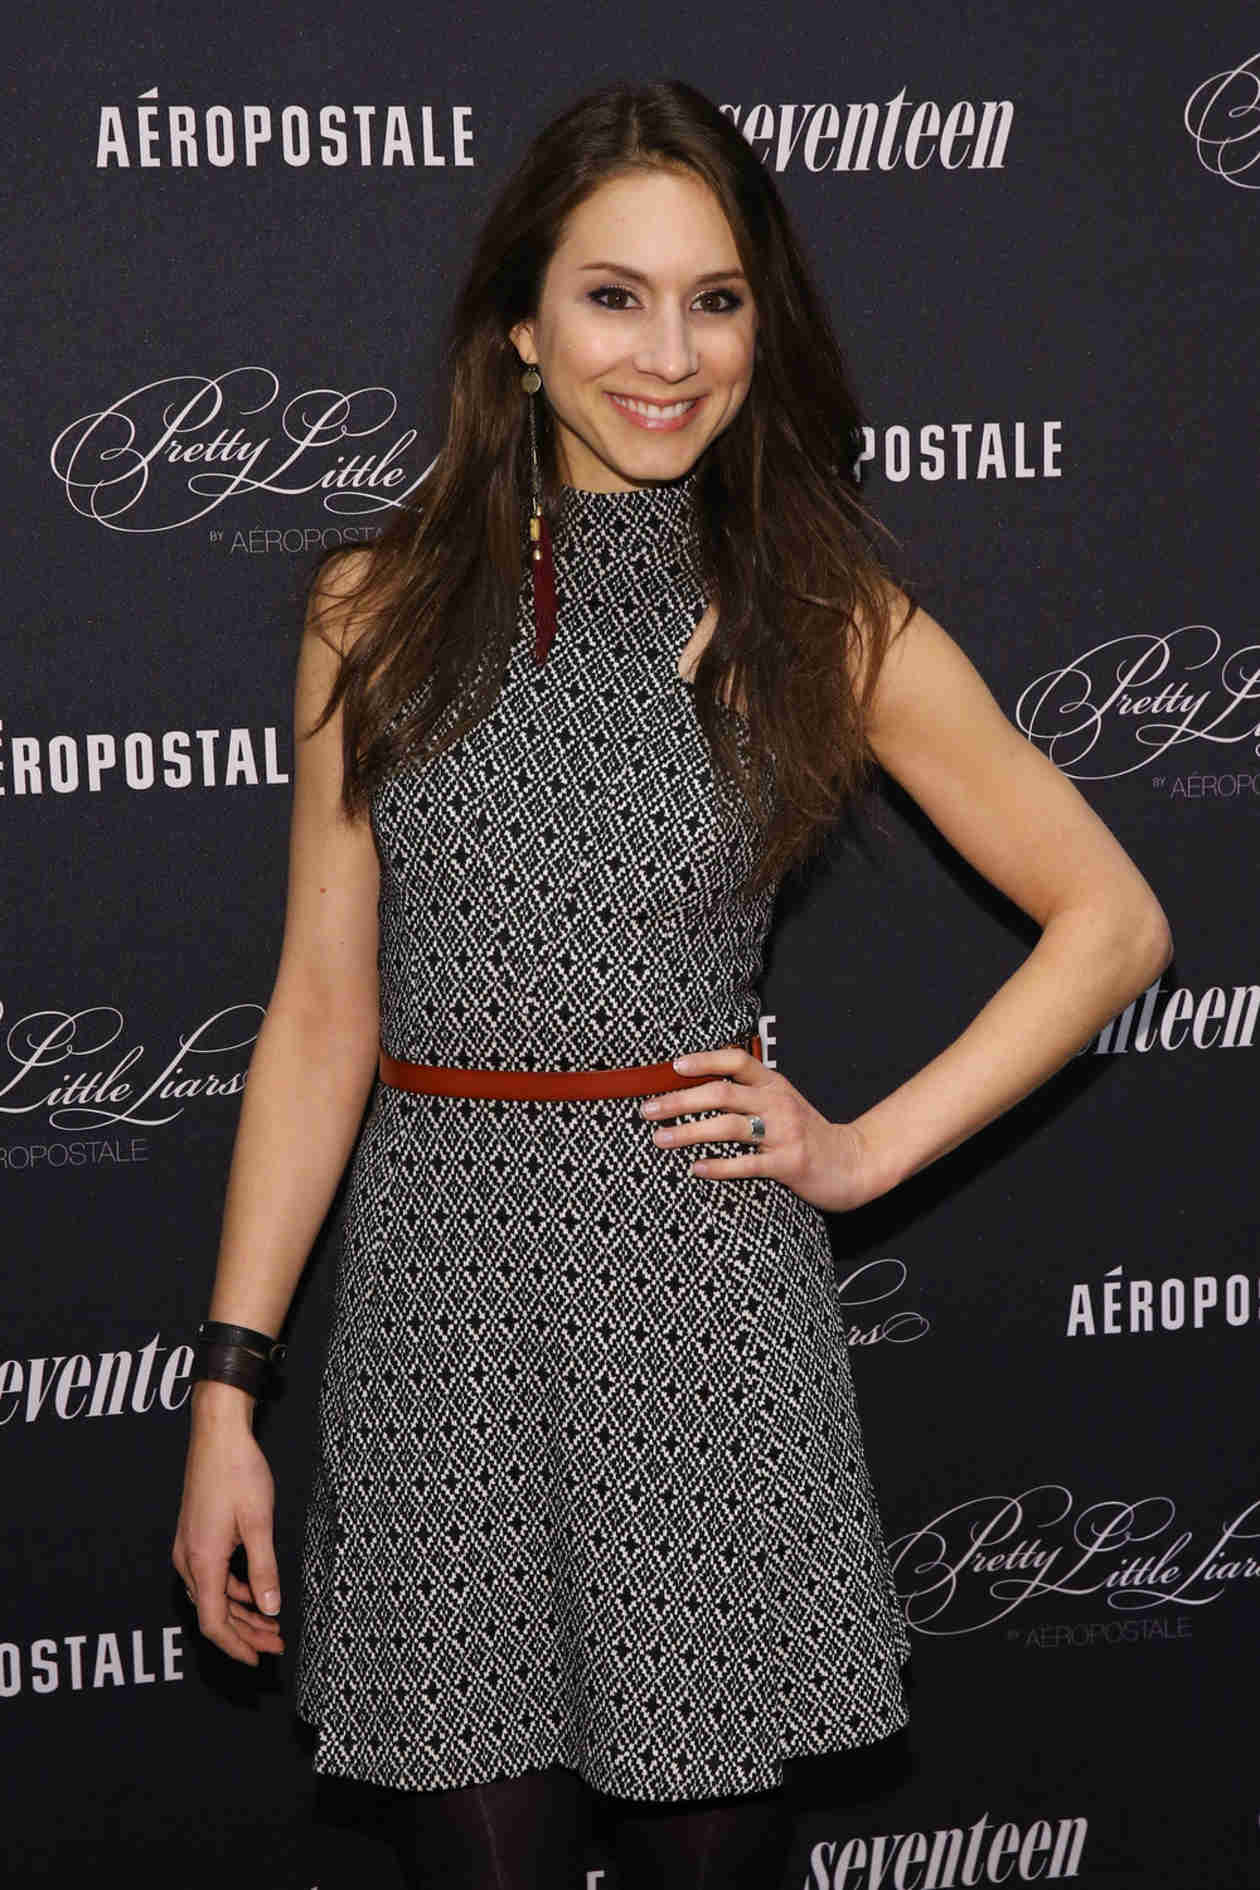 Pretty Little Liars Star Troian Bellisario Defies Gravity — Check Out This Stunning Photo!